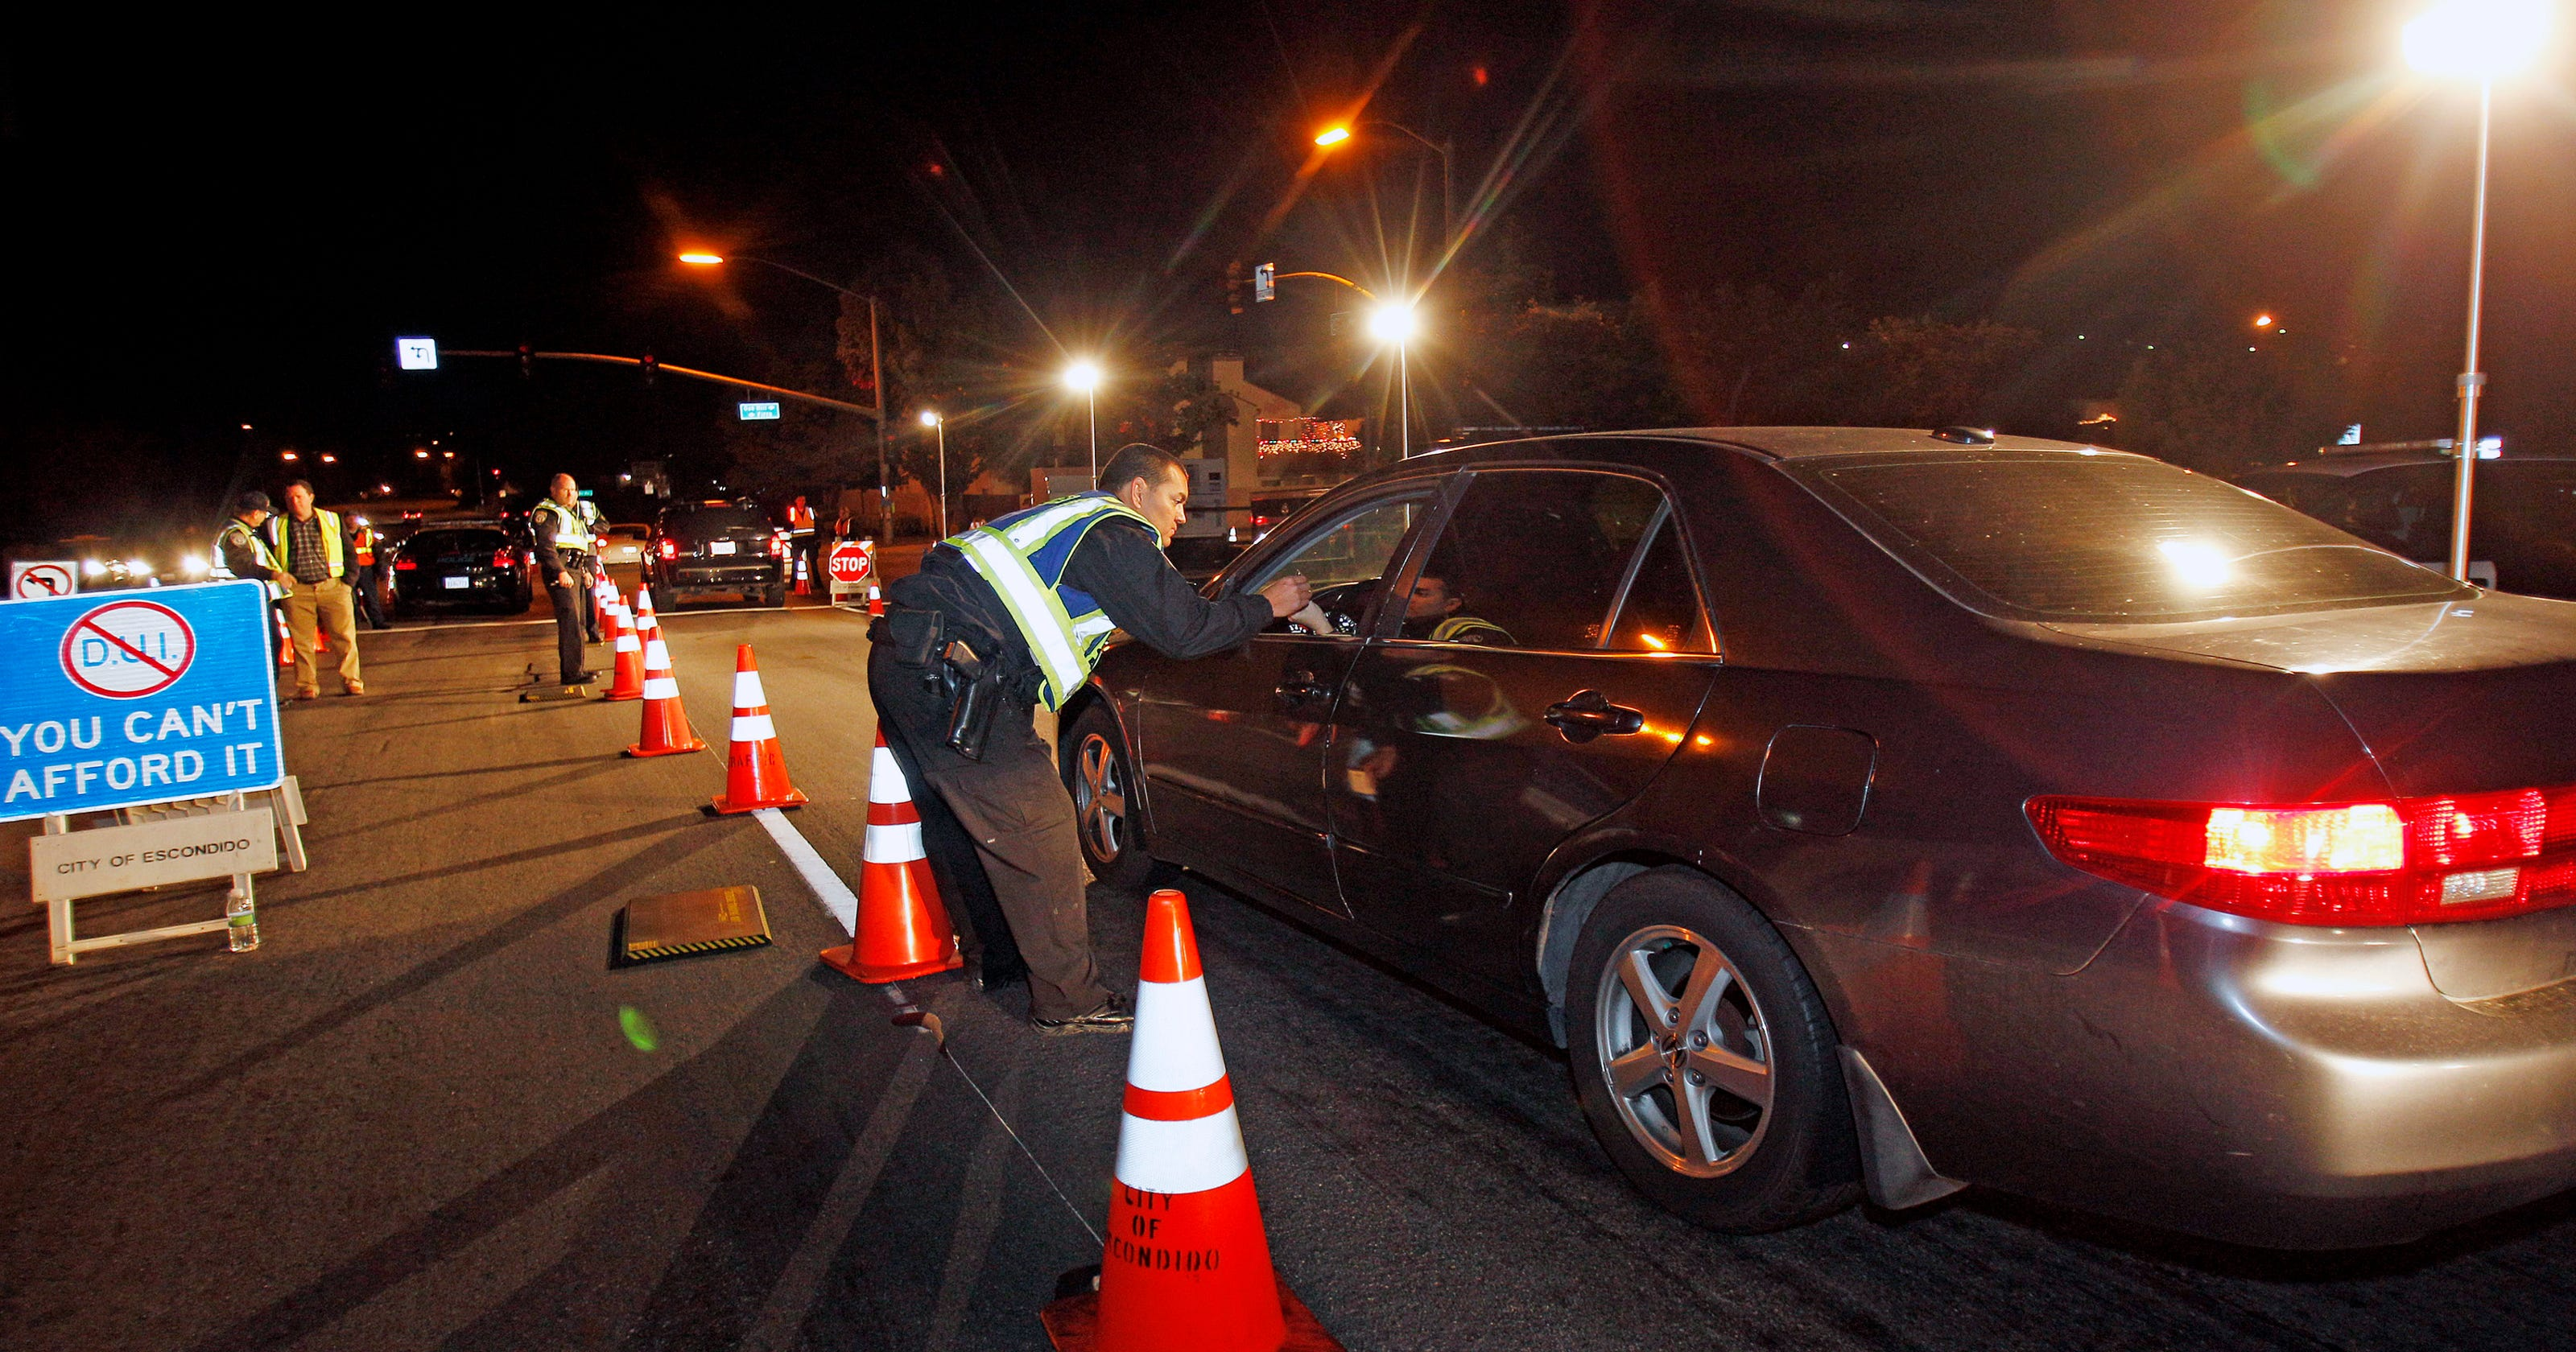 Are 'No Refusal' DUI checkpoints legal?